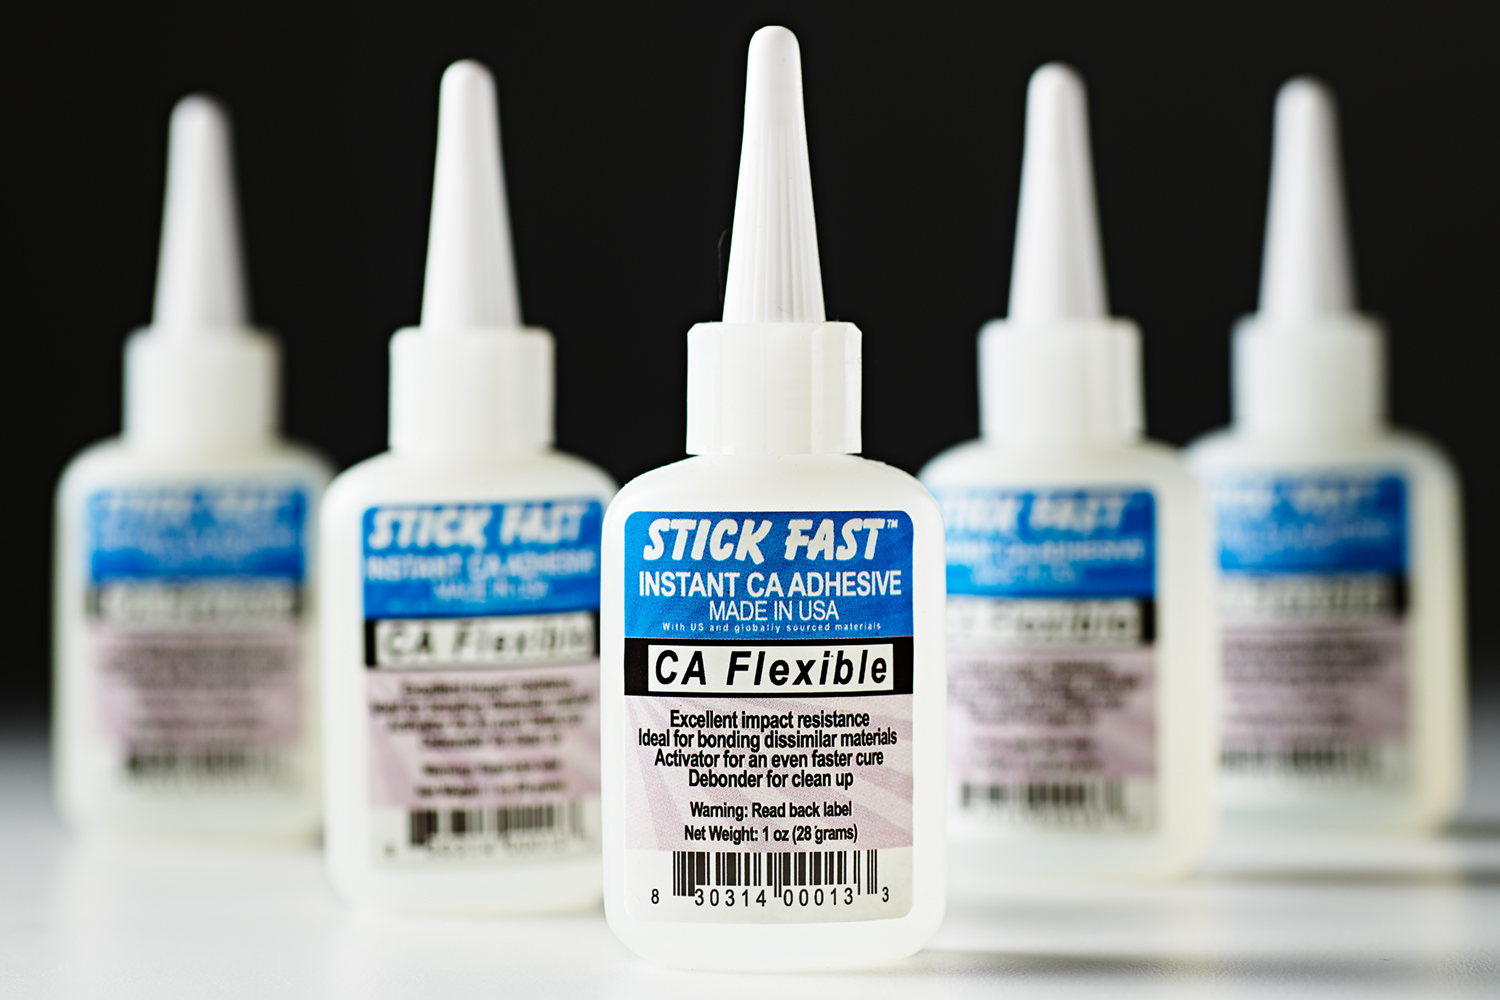 203164 #013 StickFastFlexible 1oz 3195